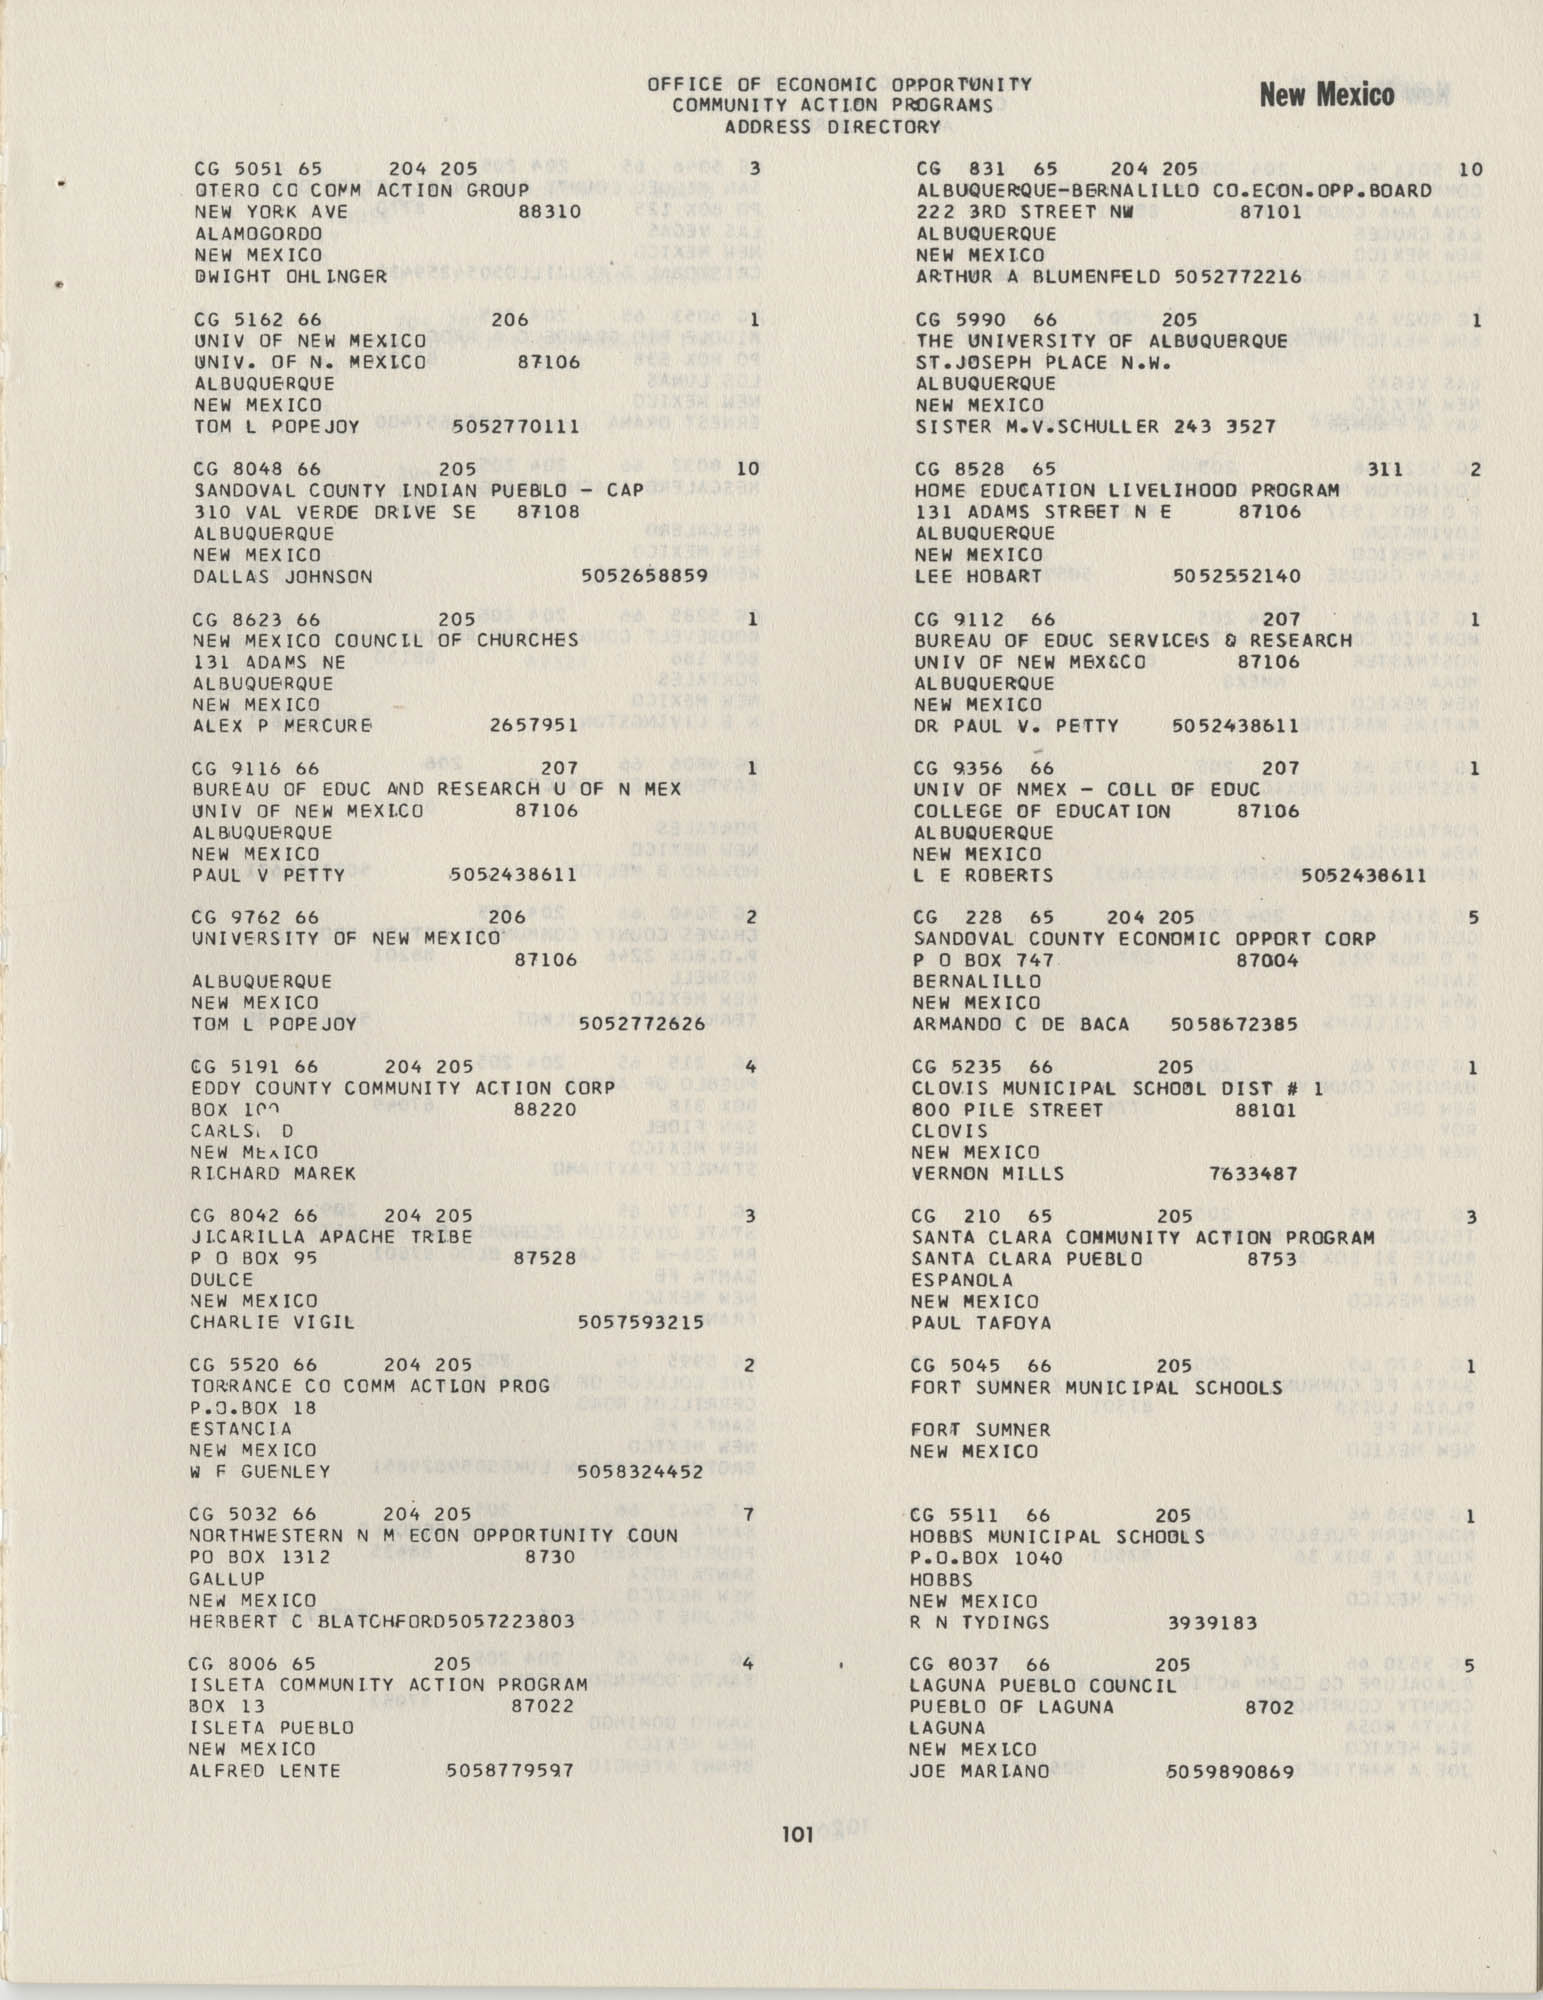 Community Action Programs Directory, June 15, 1966, Page 101